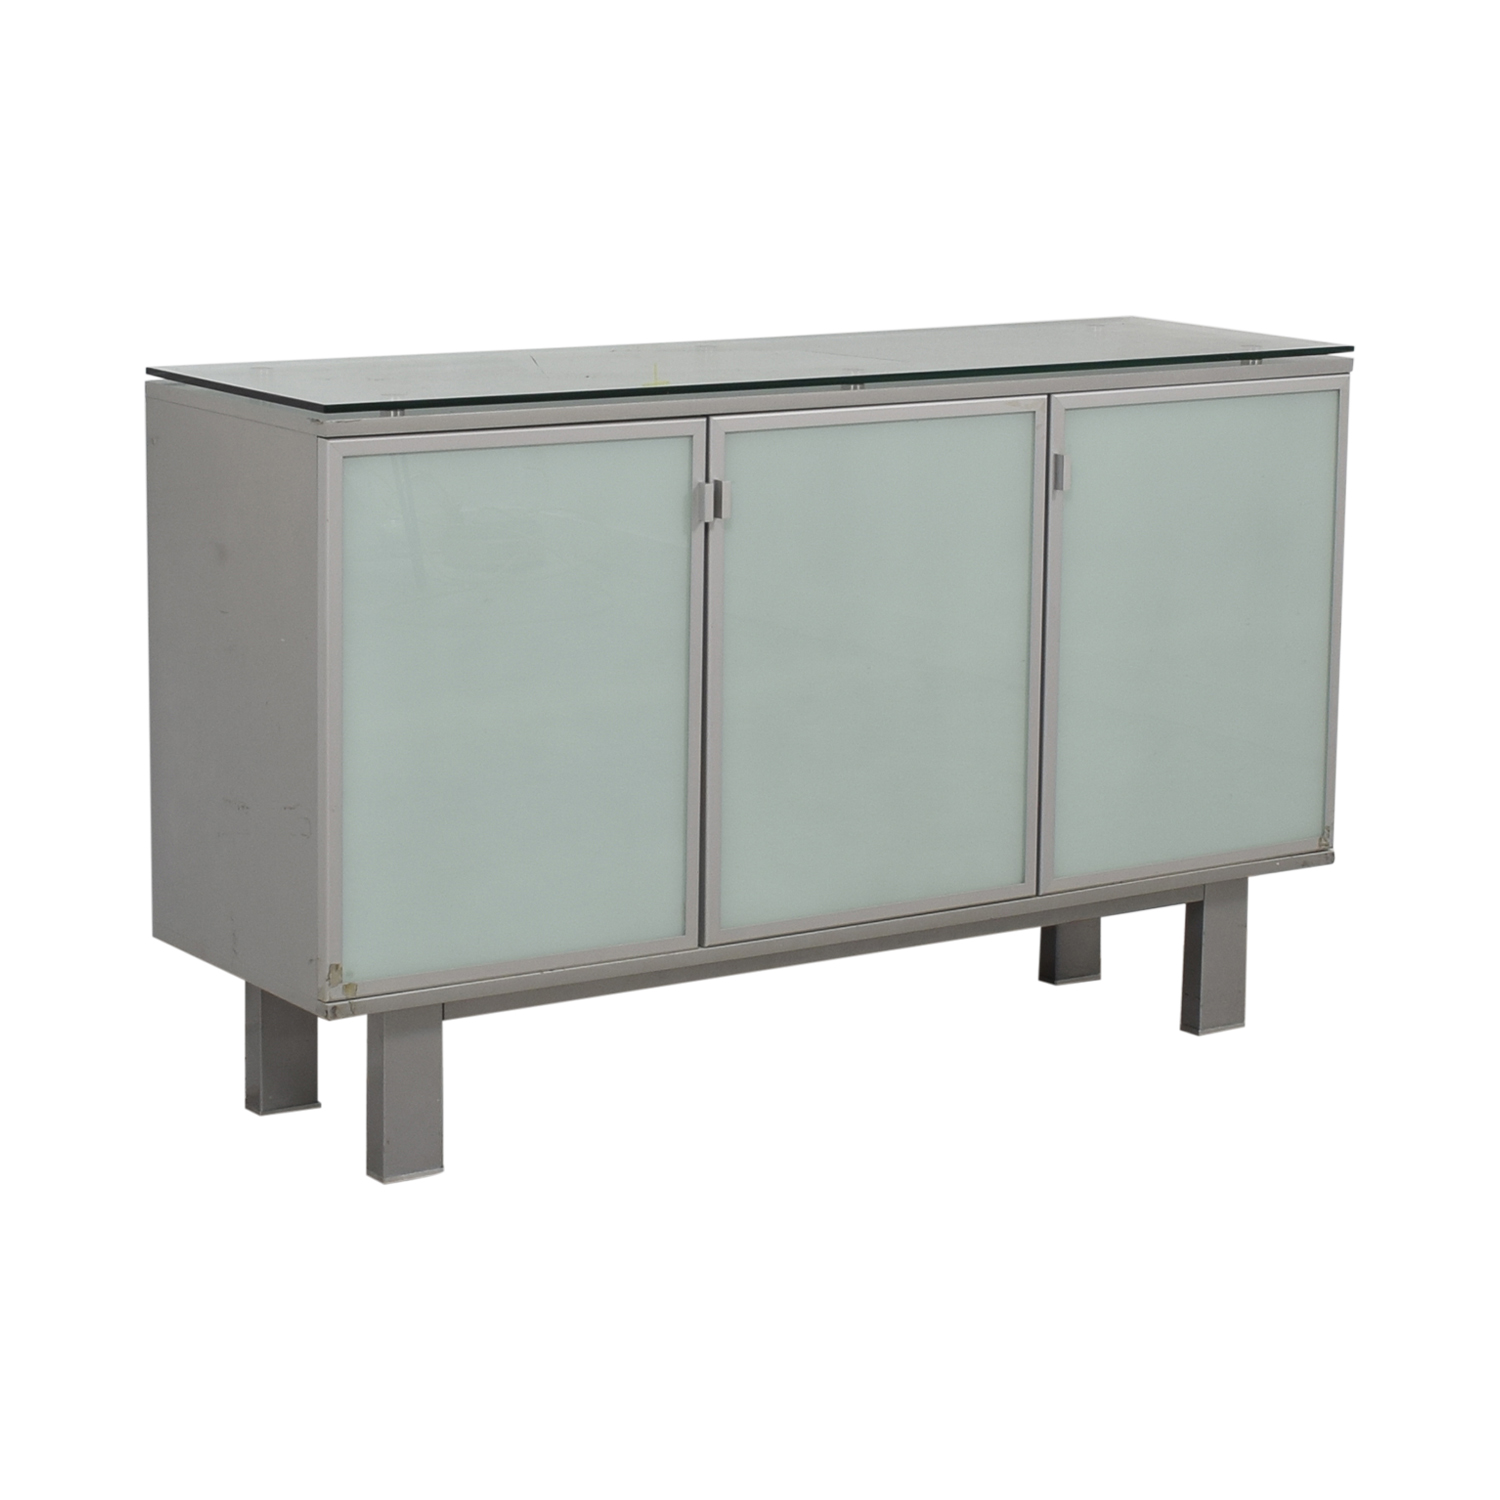 Green Glass Credenza on sale